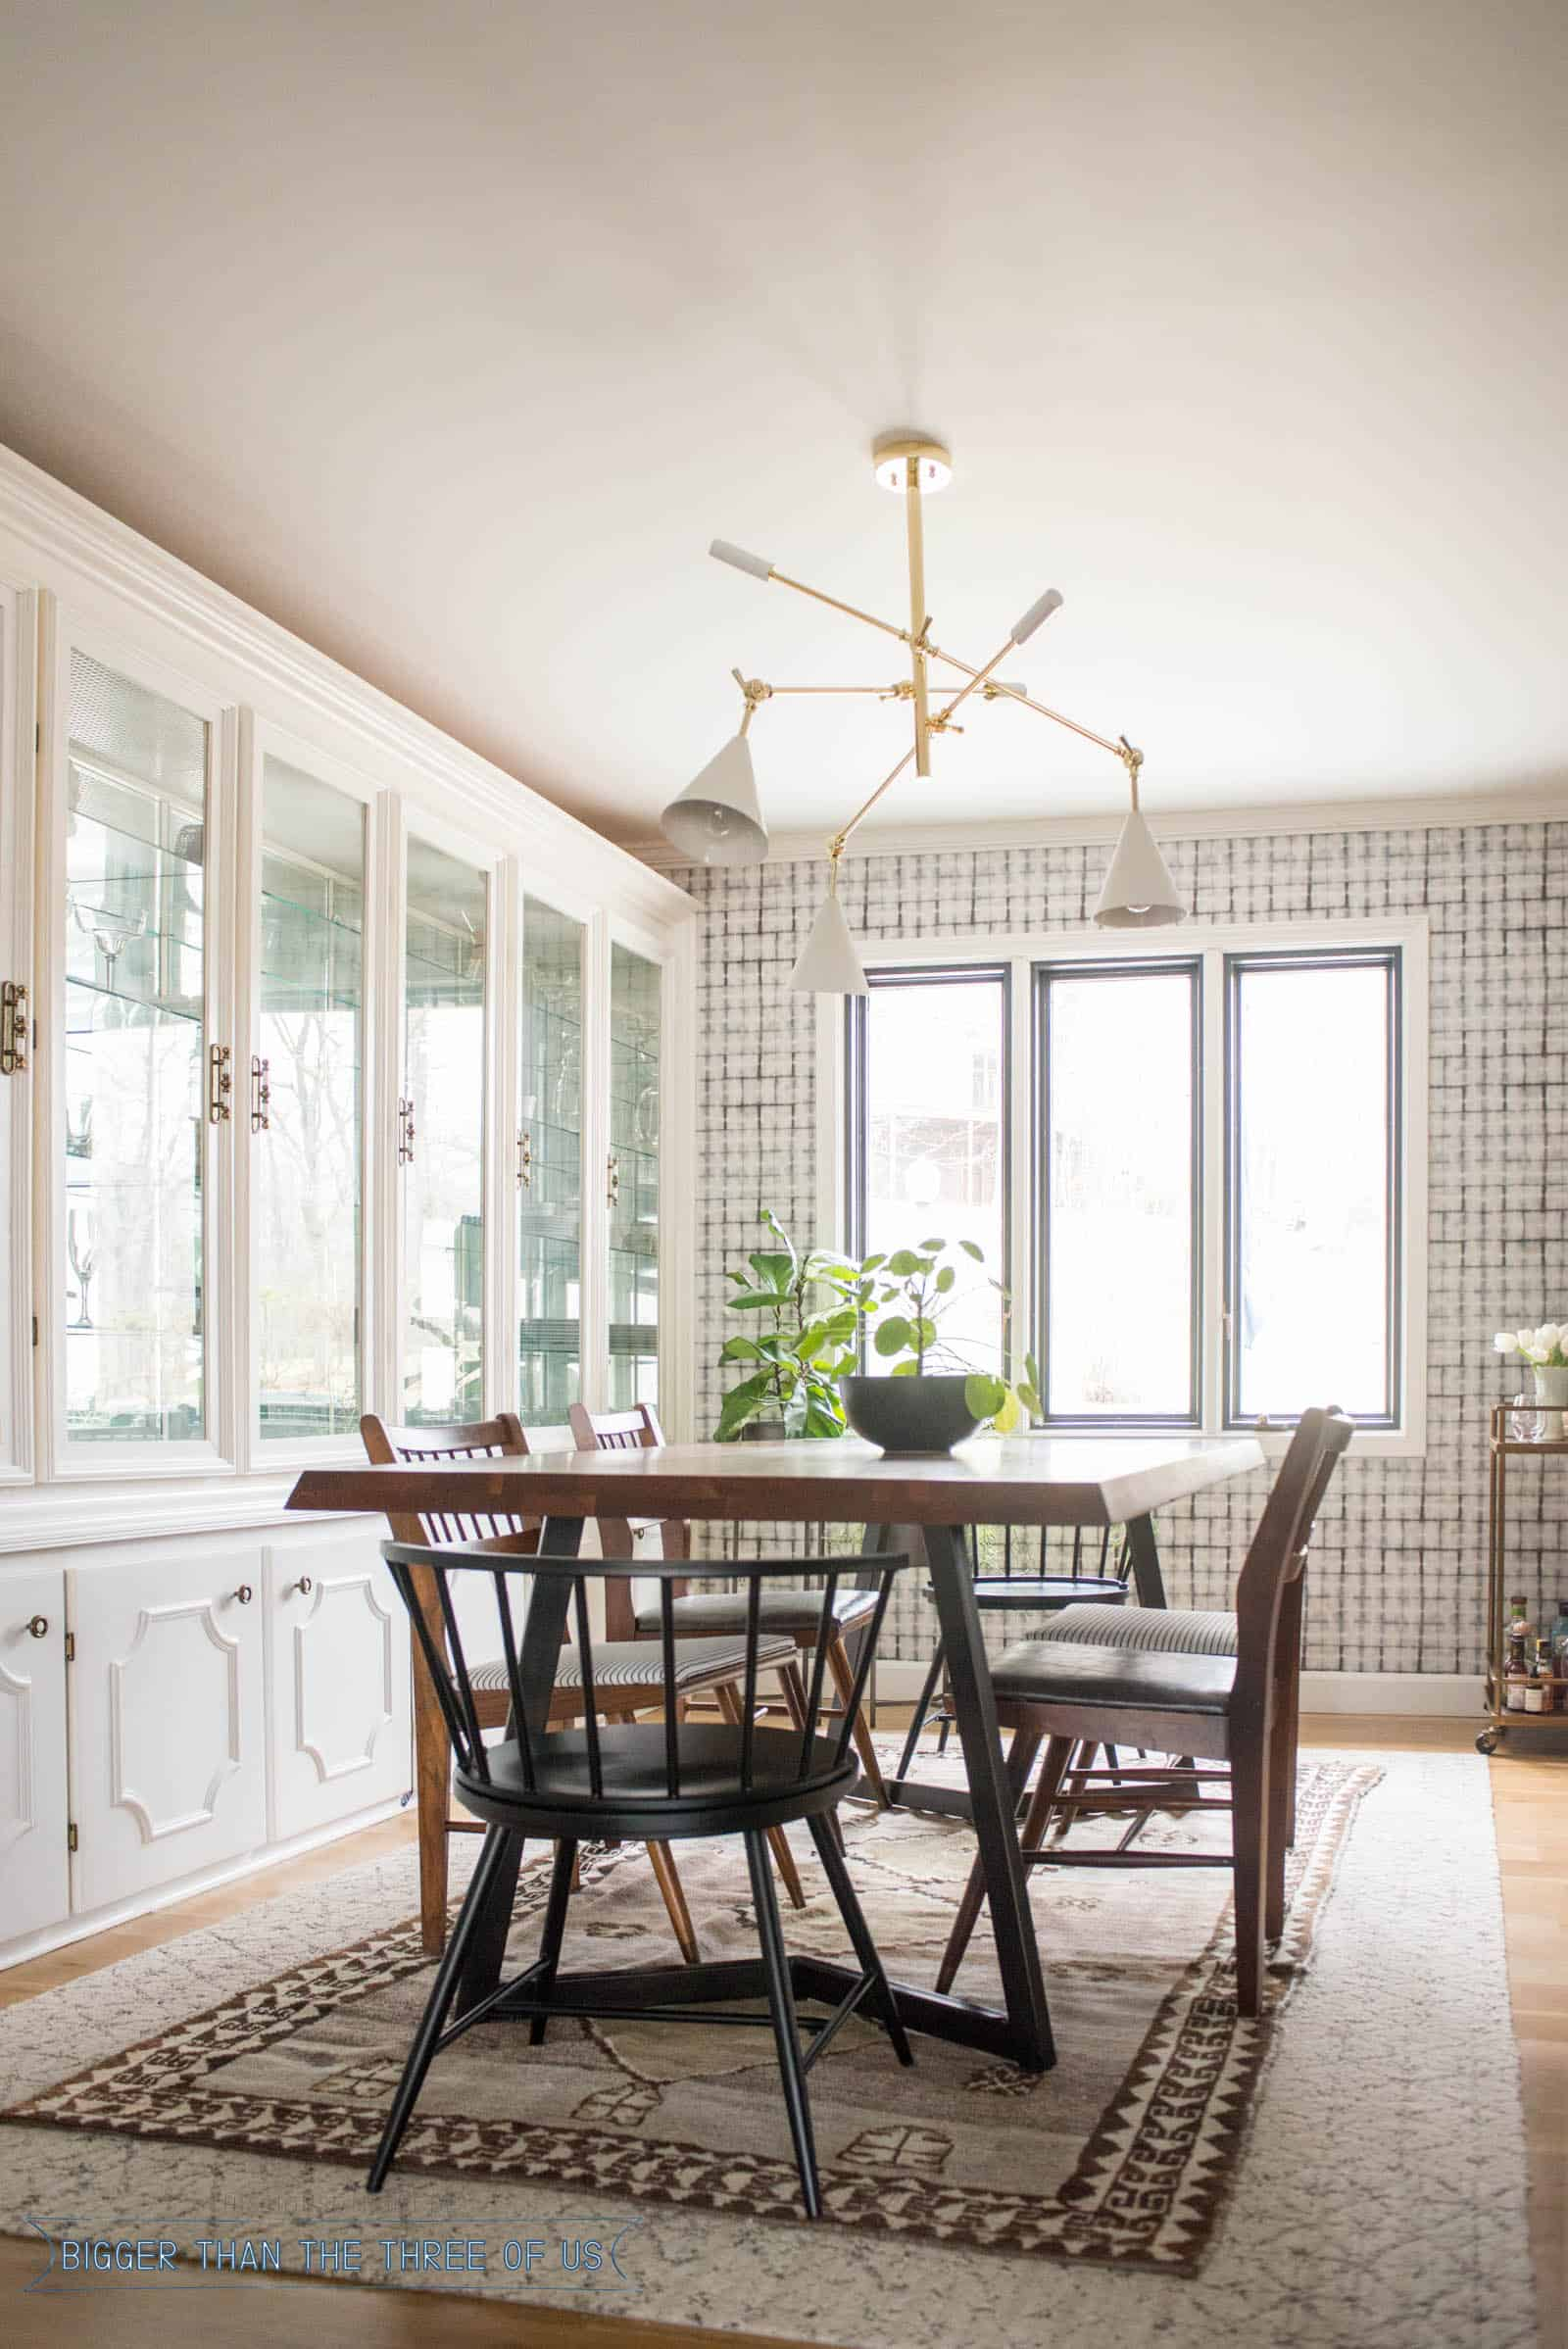 Blue and White vintage dining room with wood floors, wallpaper and midcentury modern furniture